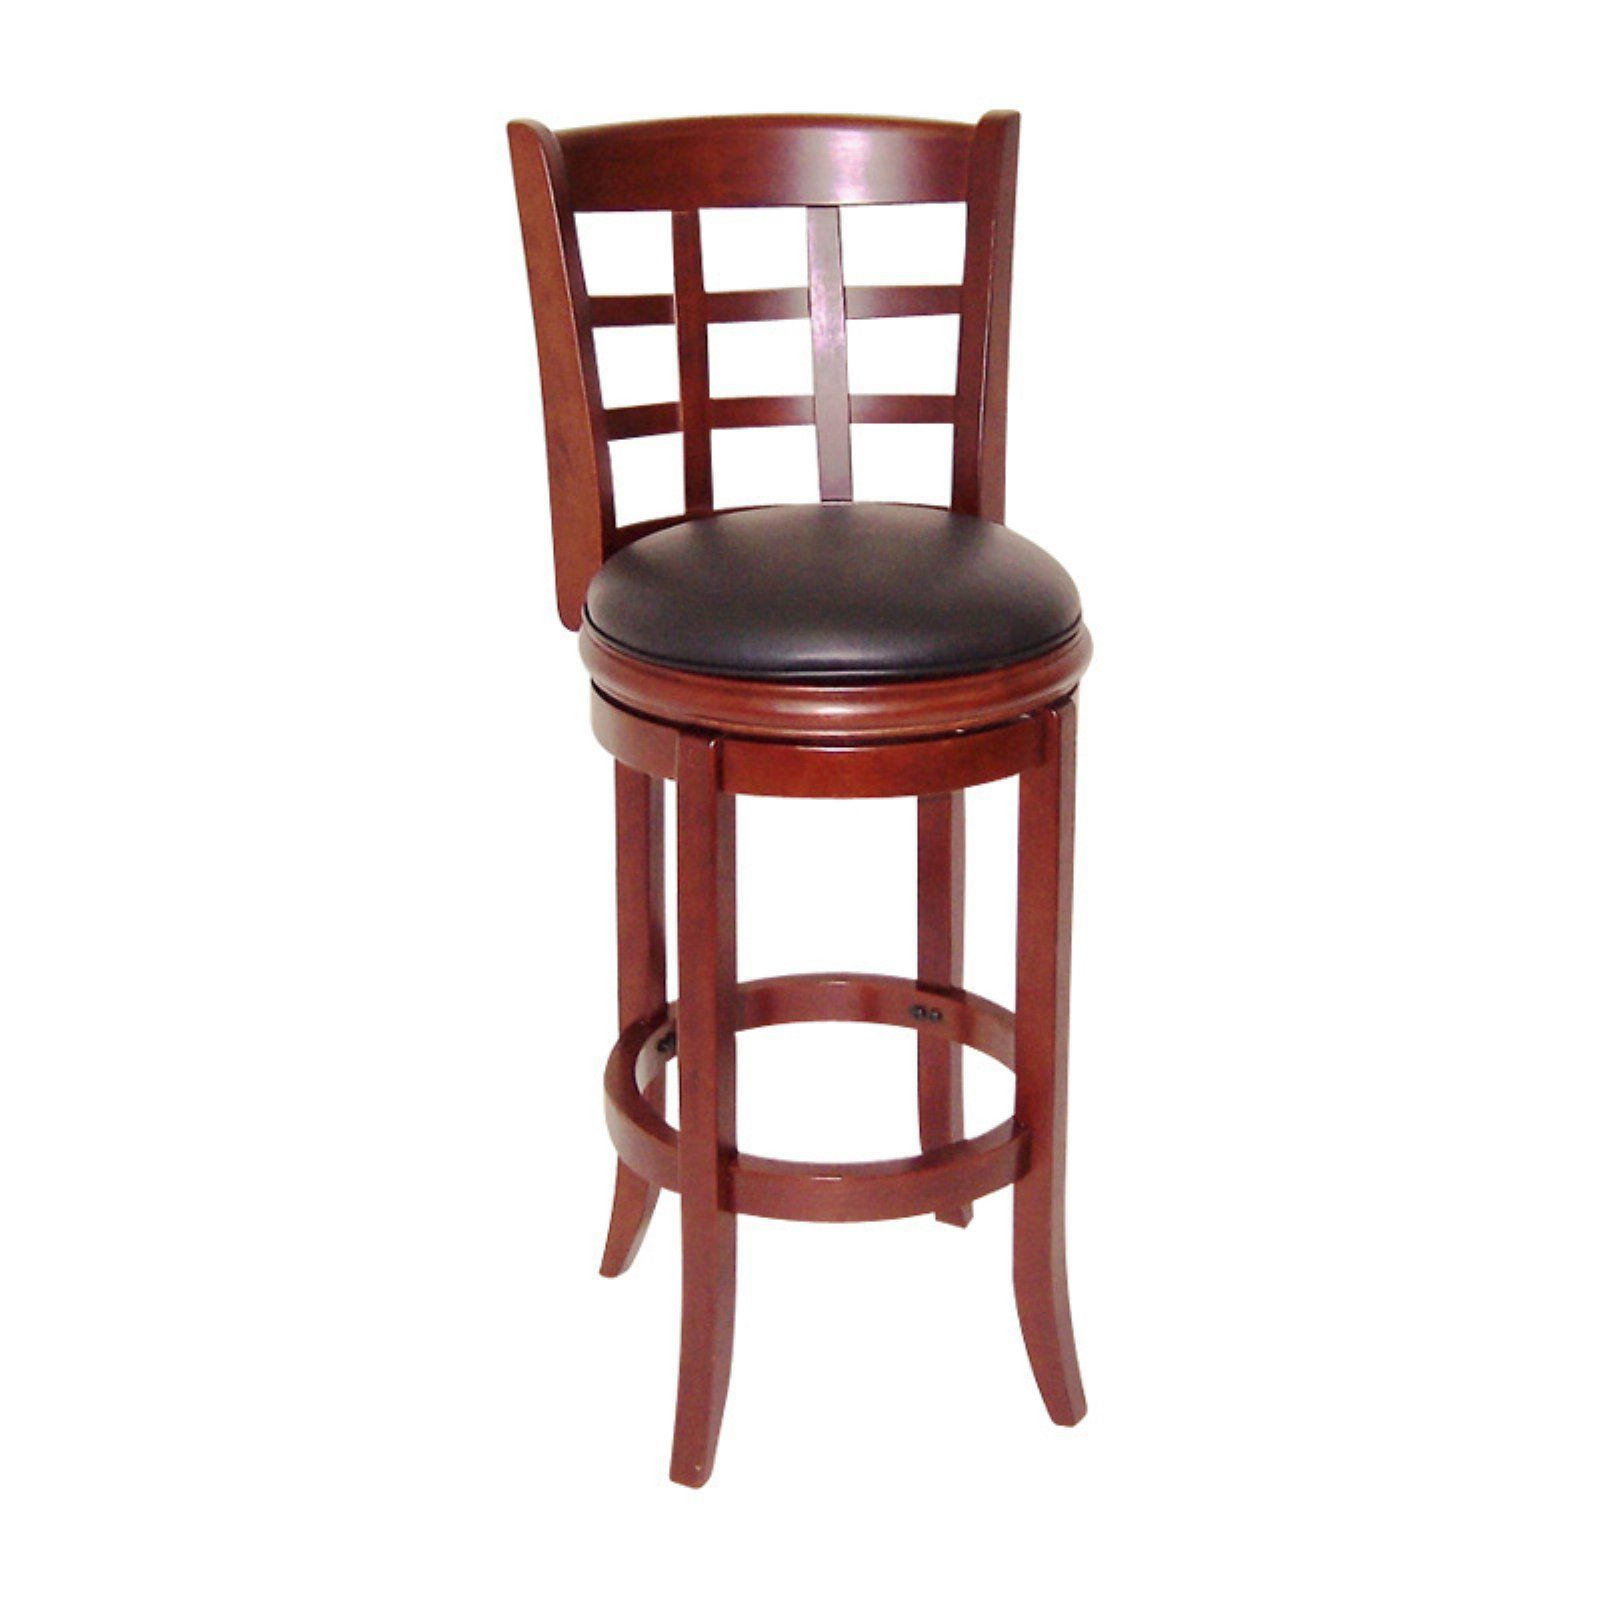 Terrific Boraam Kyoto 29 In Swivel Bar Stool Dark Cherry Products Gamerscity Chair Design For Home Gamerscityorg